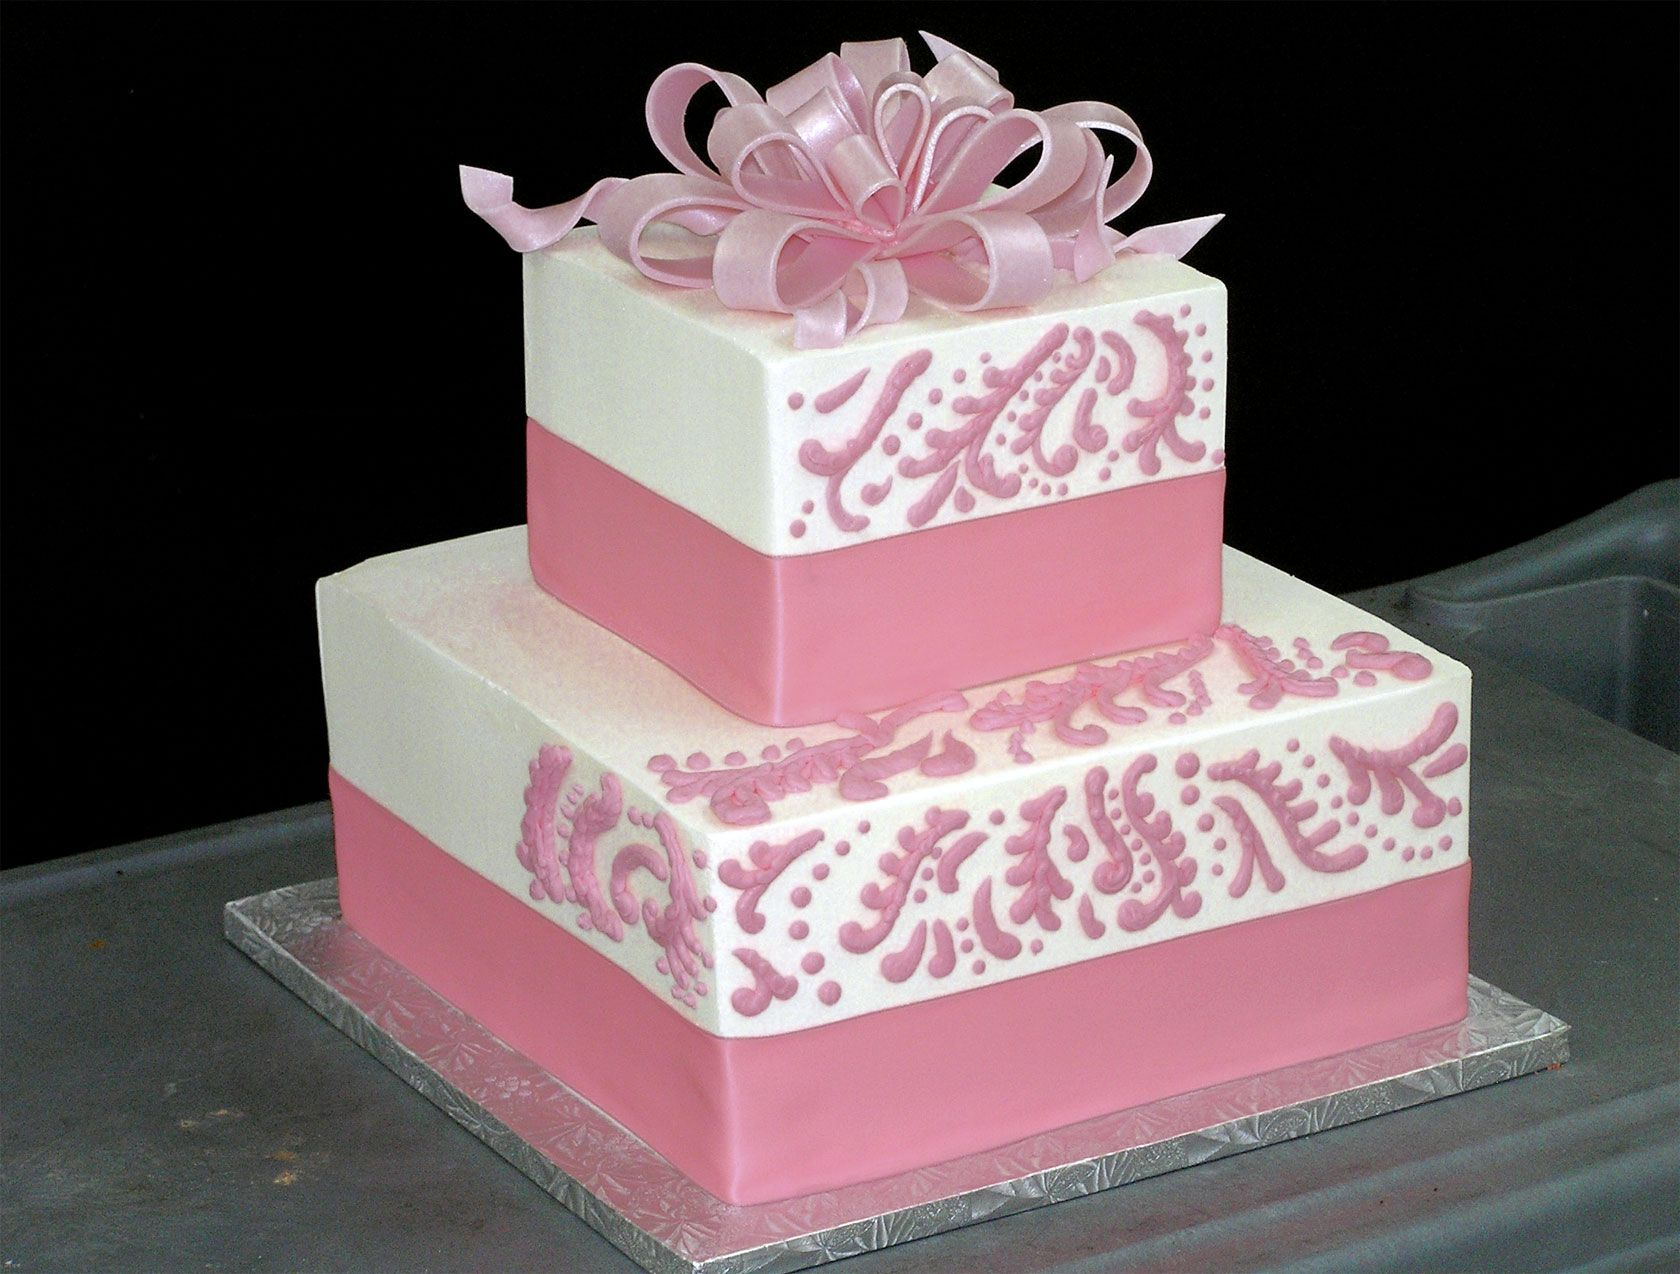 2 Tier Wedding Cakes Excellent Wedding Food And Drink Custom Two ...